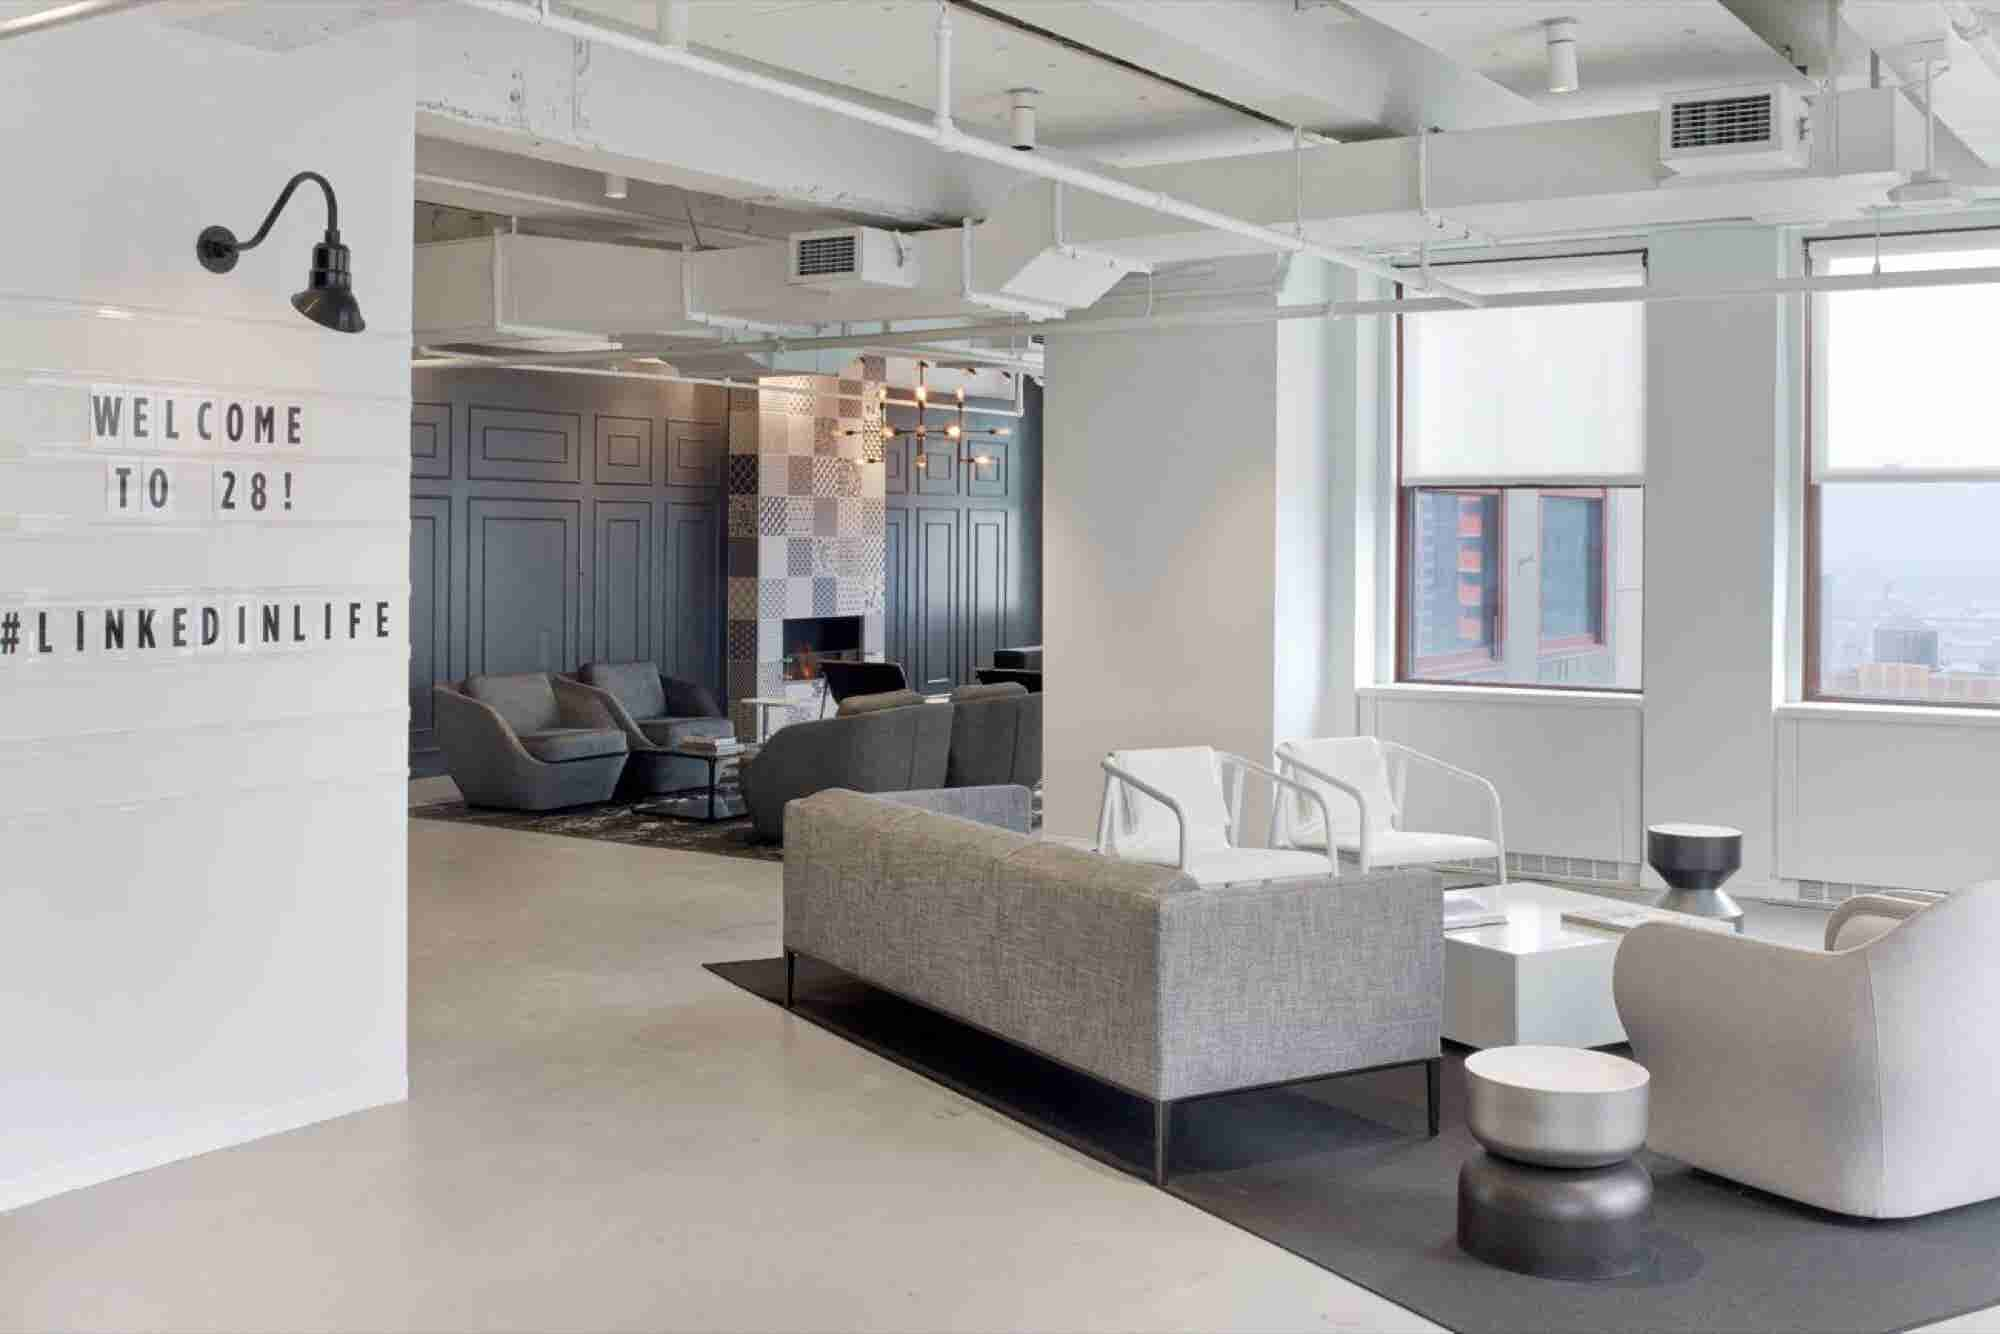 Tour LinkedIn's New York Offices, Where There's a Speakeasy and a Movie Theater